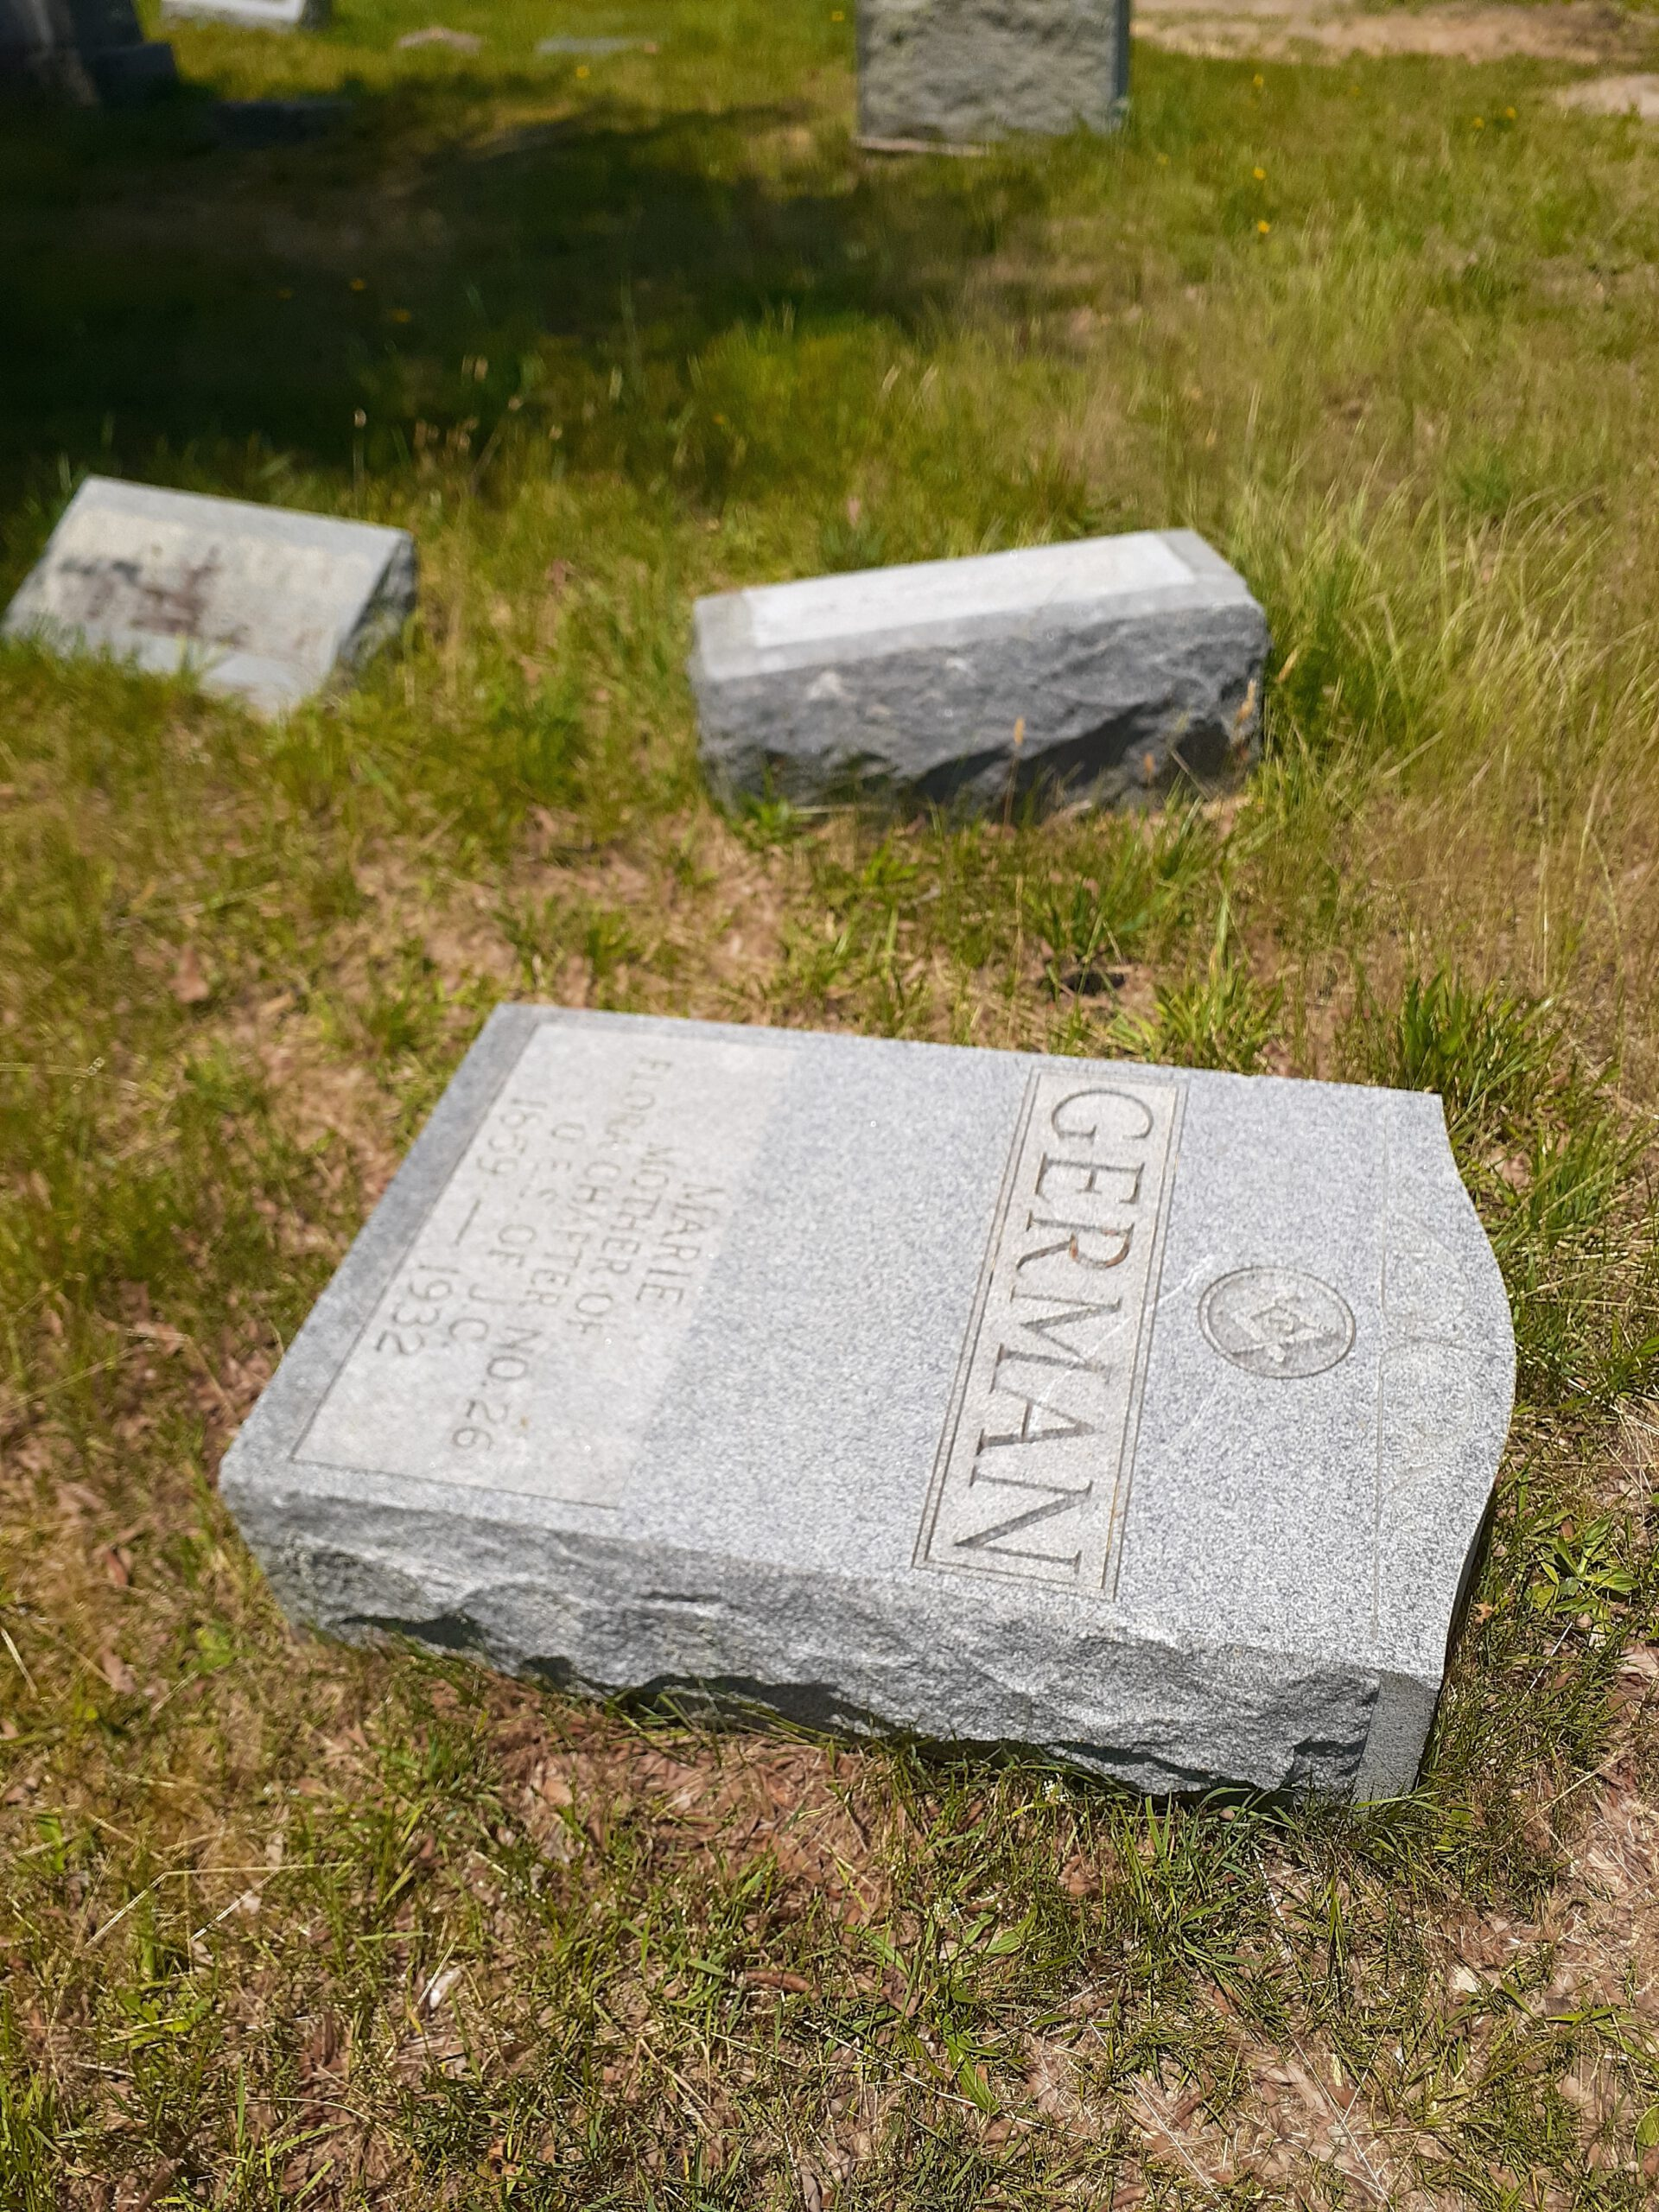 TOMS RIVER: Riverside Cemetery in Desperate Need of Attention/ Maintenance